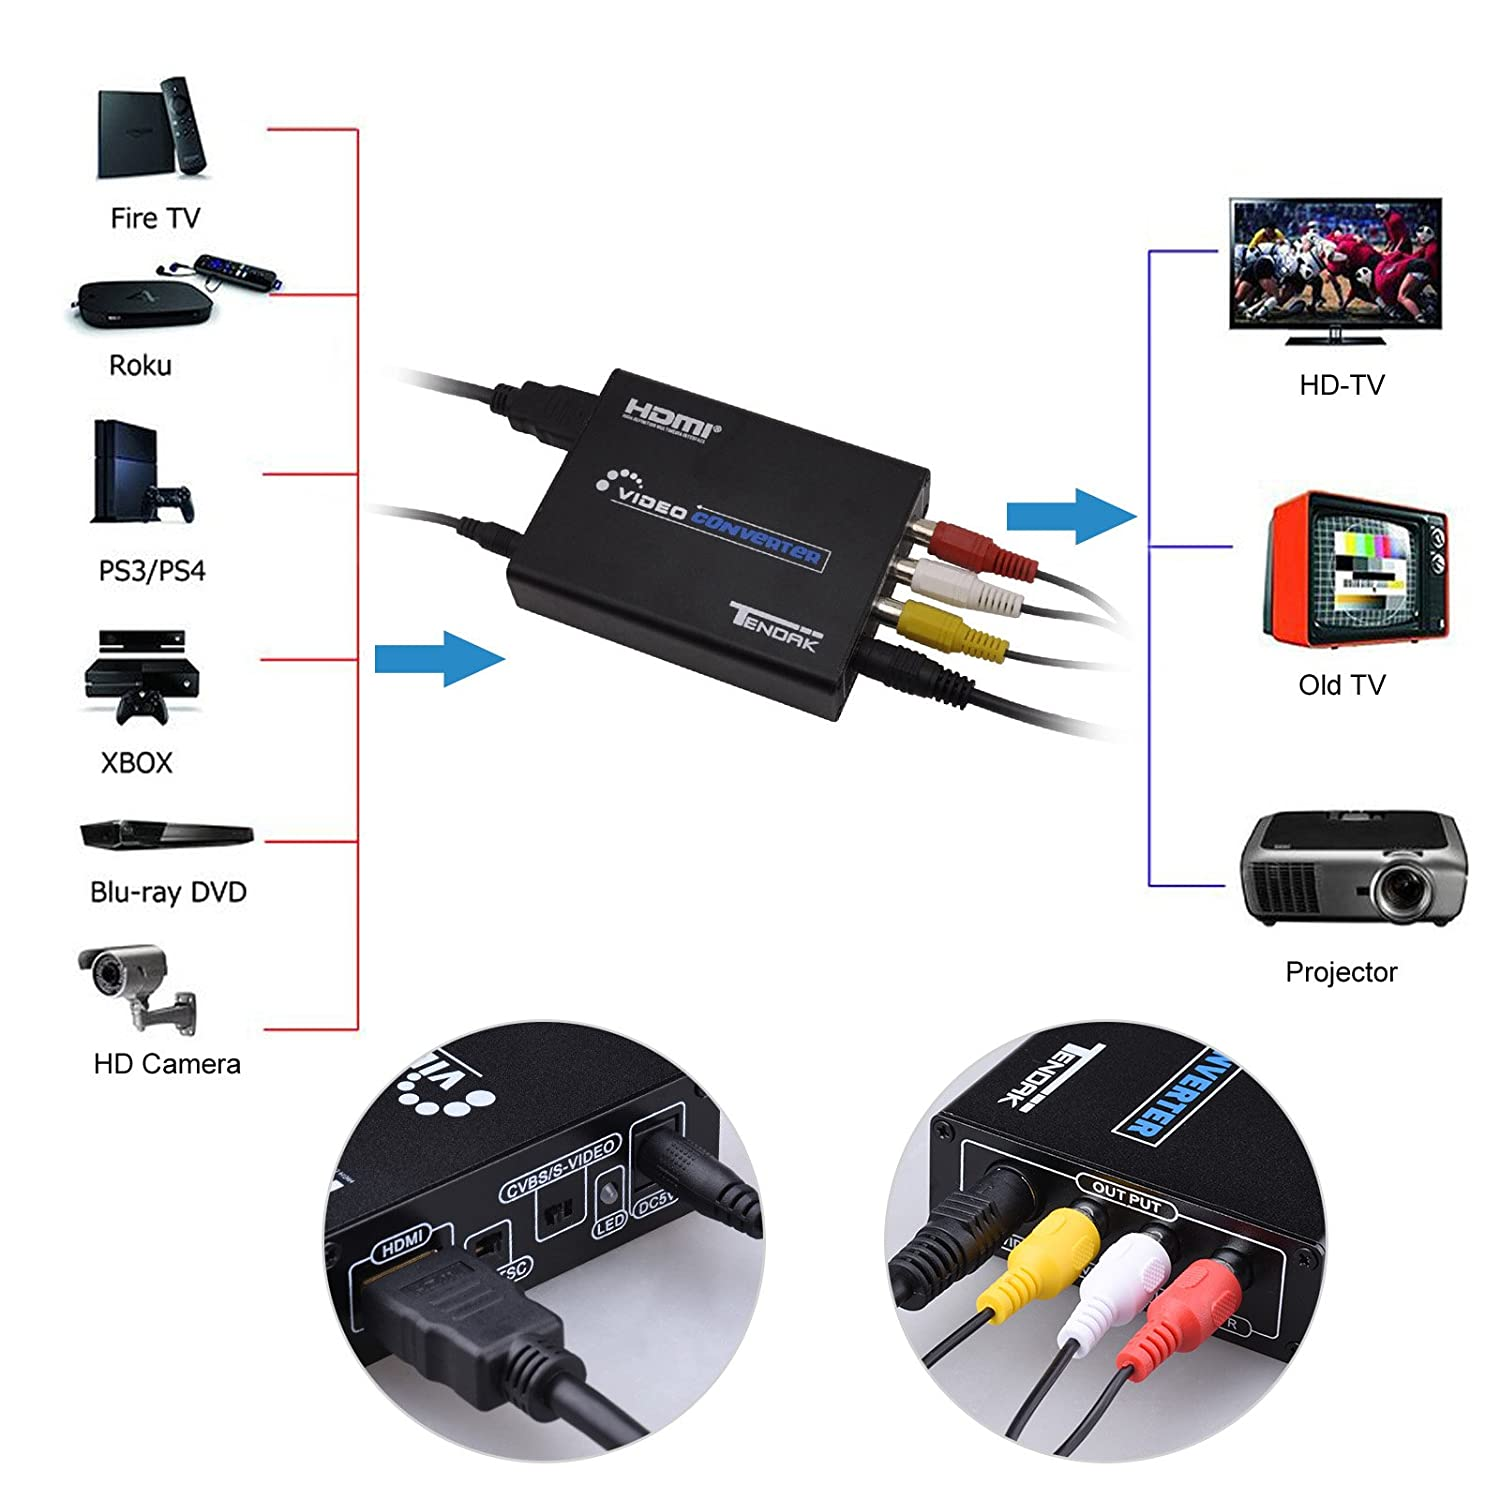 ... RCA R/L audio video convertidor adaptador (Upscaler Apoyo 1080P con 720p/RCA/S-Video Cable para PC, Laptop, Xbox, PS3 STB/VCR de cámara, TV VHS DVD/Blue ...